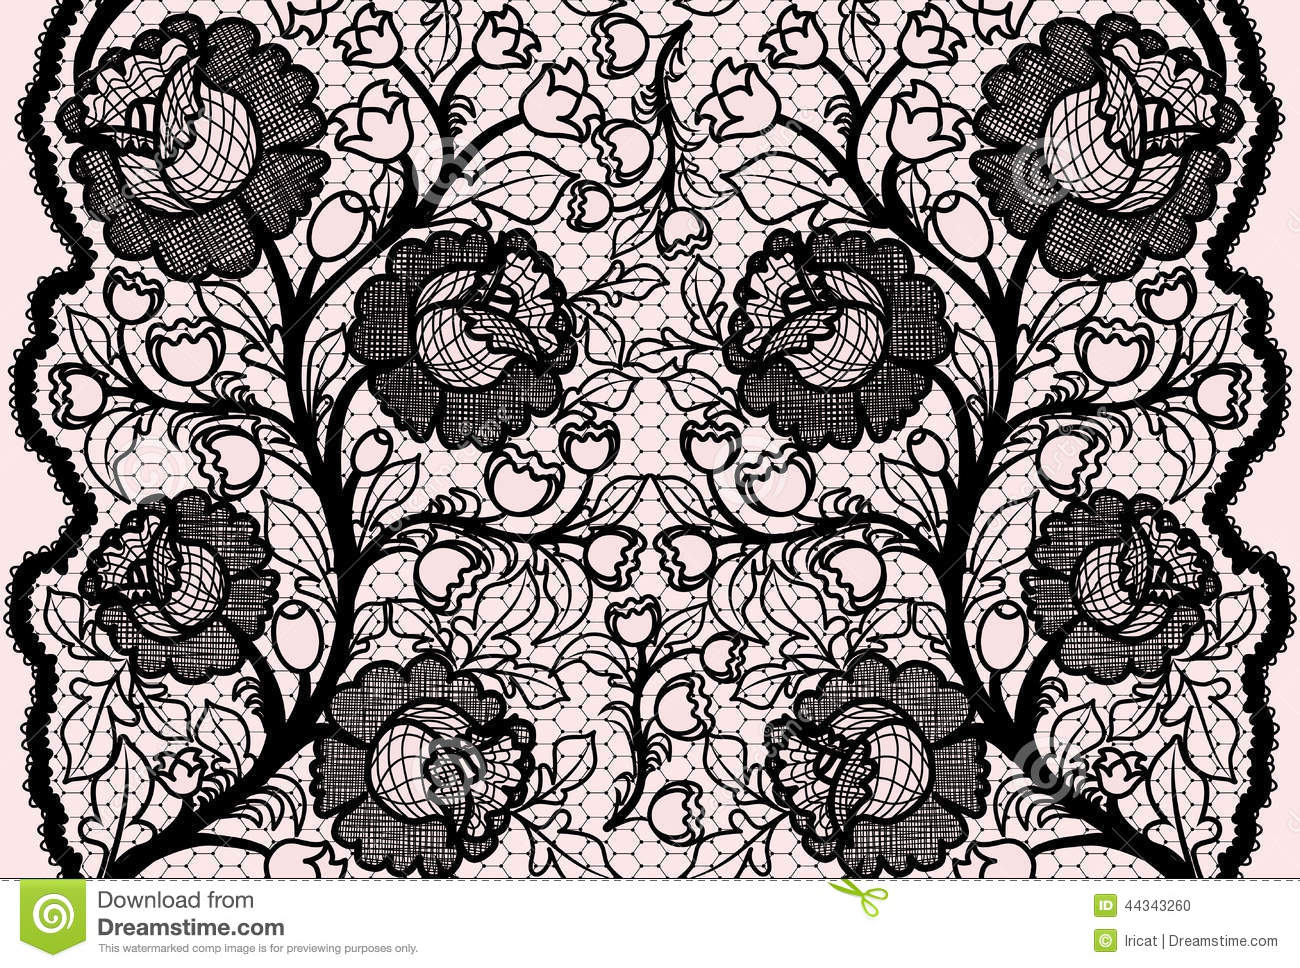 Black And Cream Damask Wallpaper Abstract Seamless Black Lace Ribbon With Feminine Floral